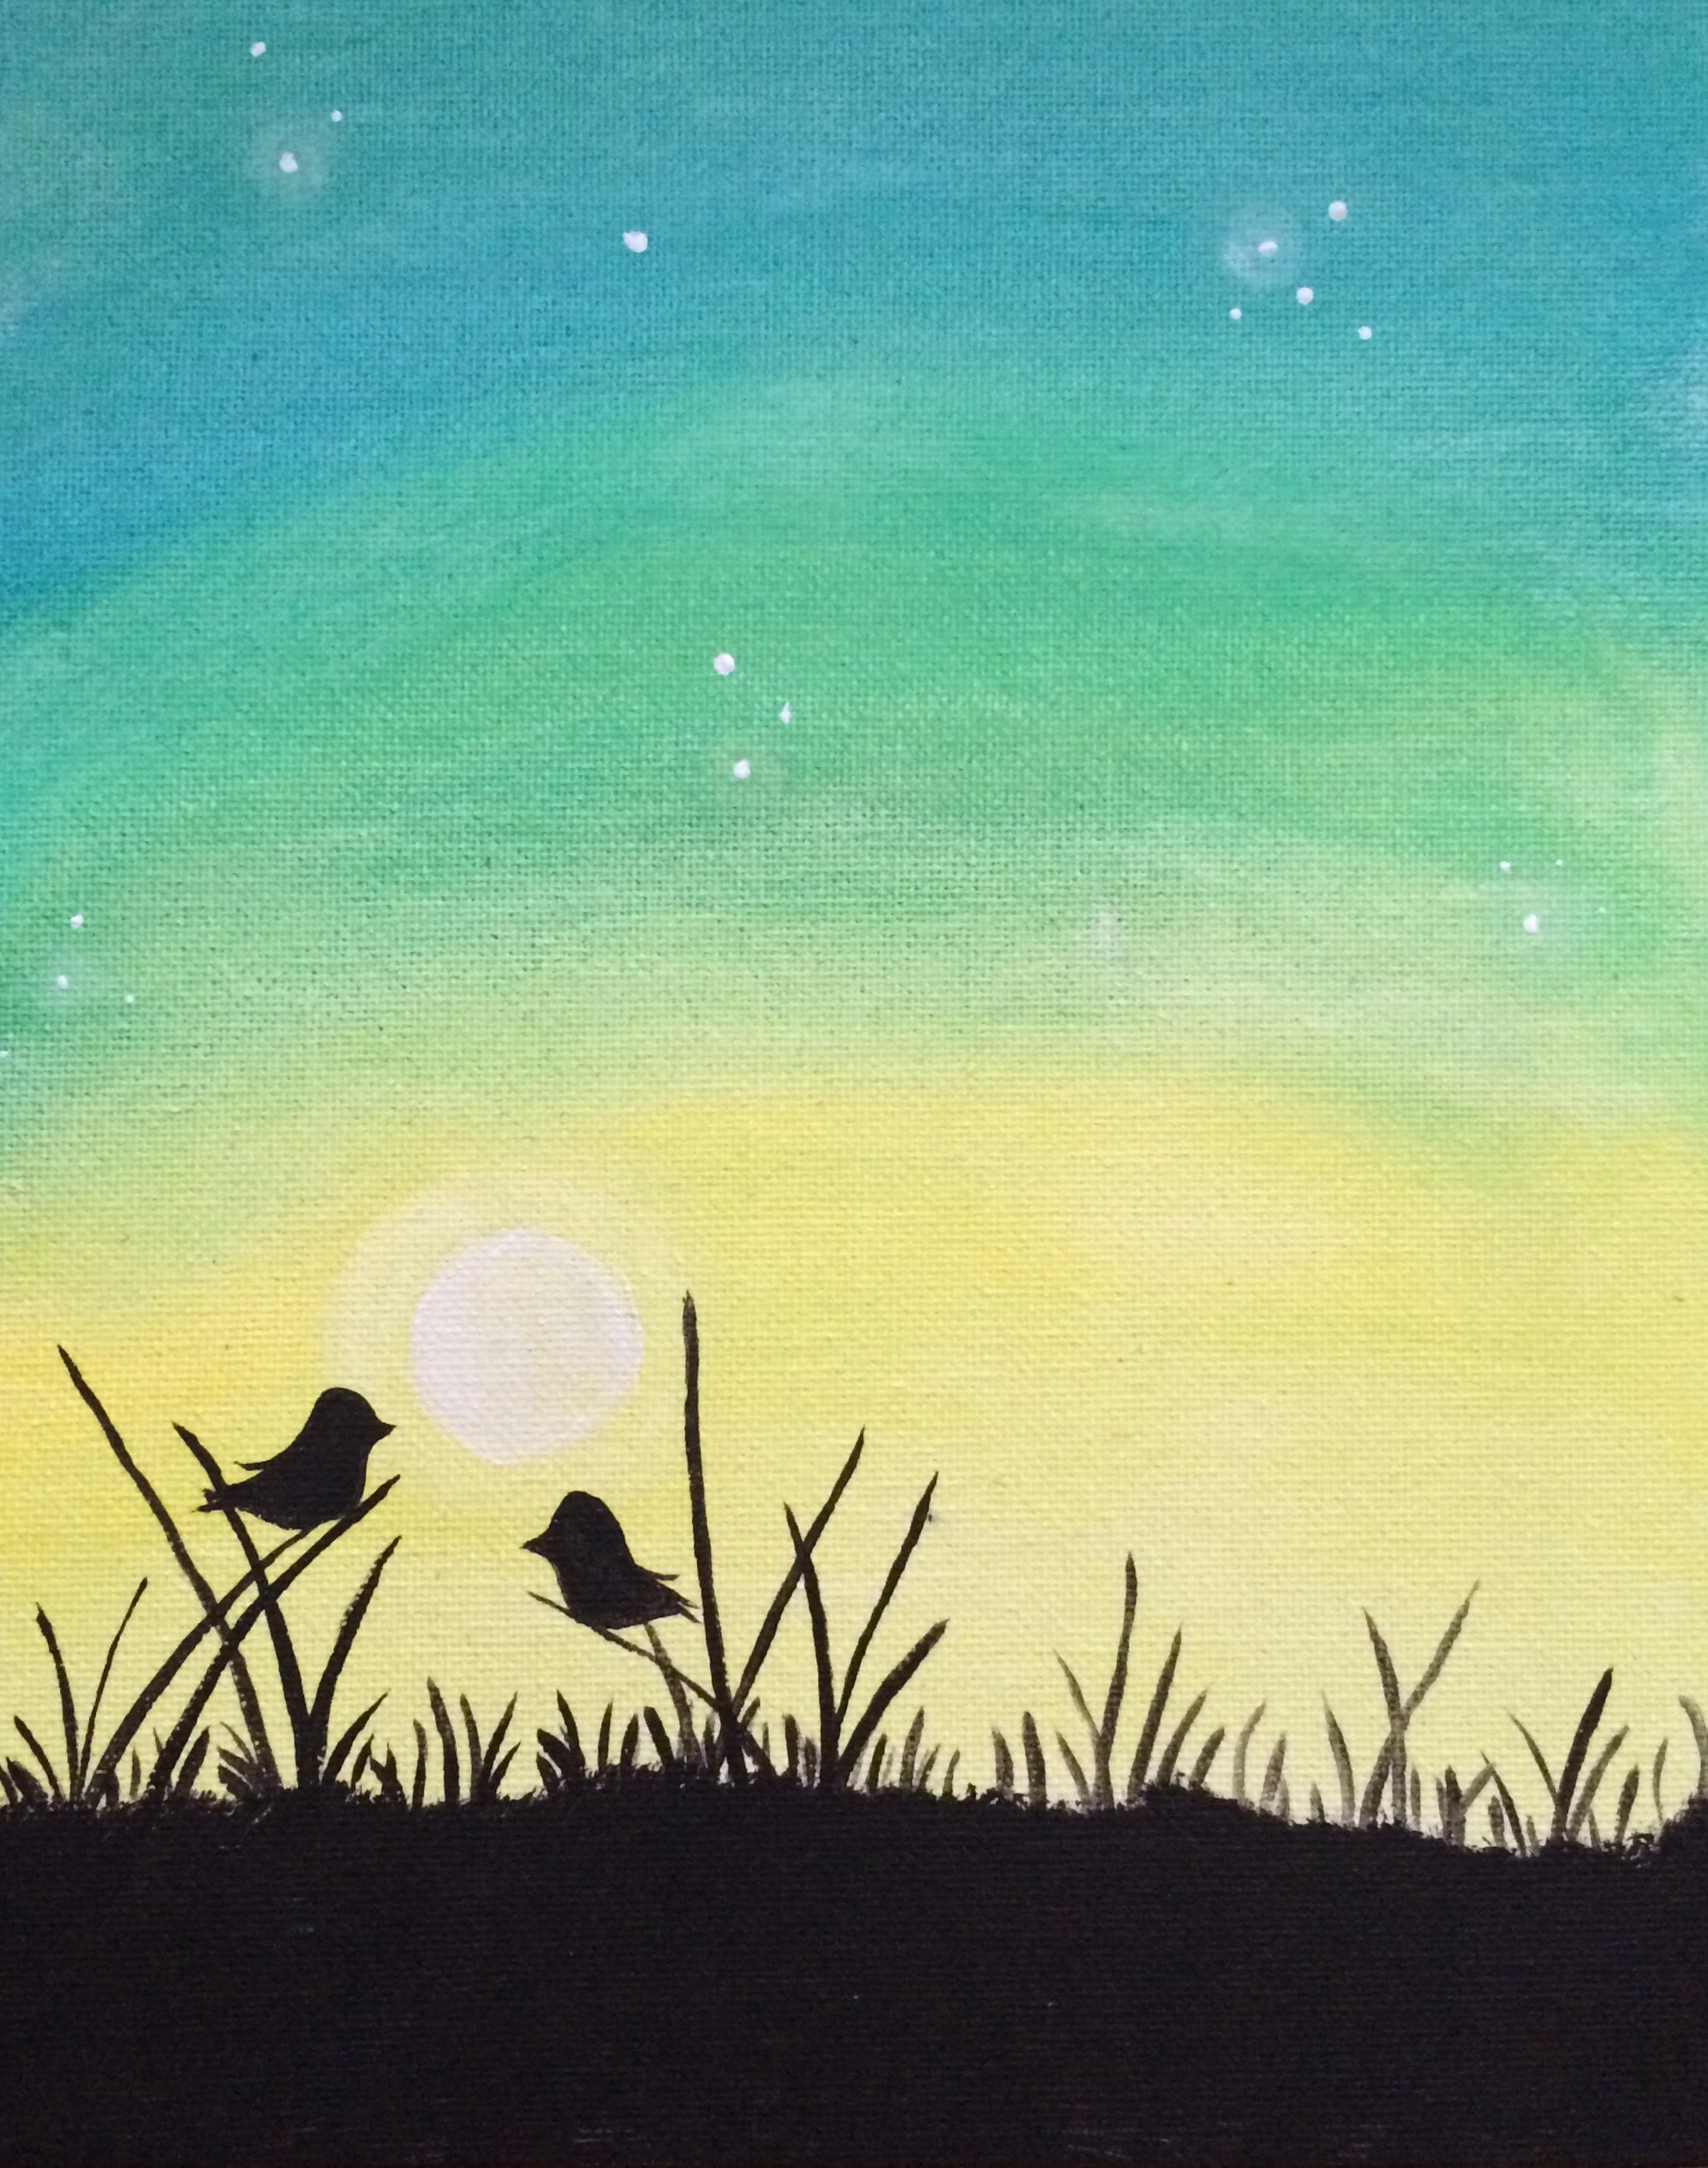 Birds on Grass